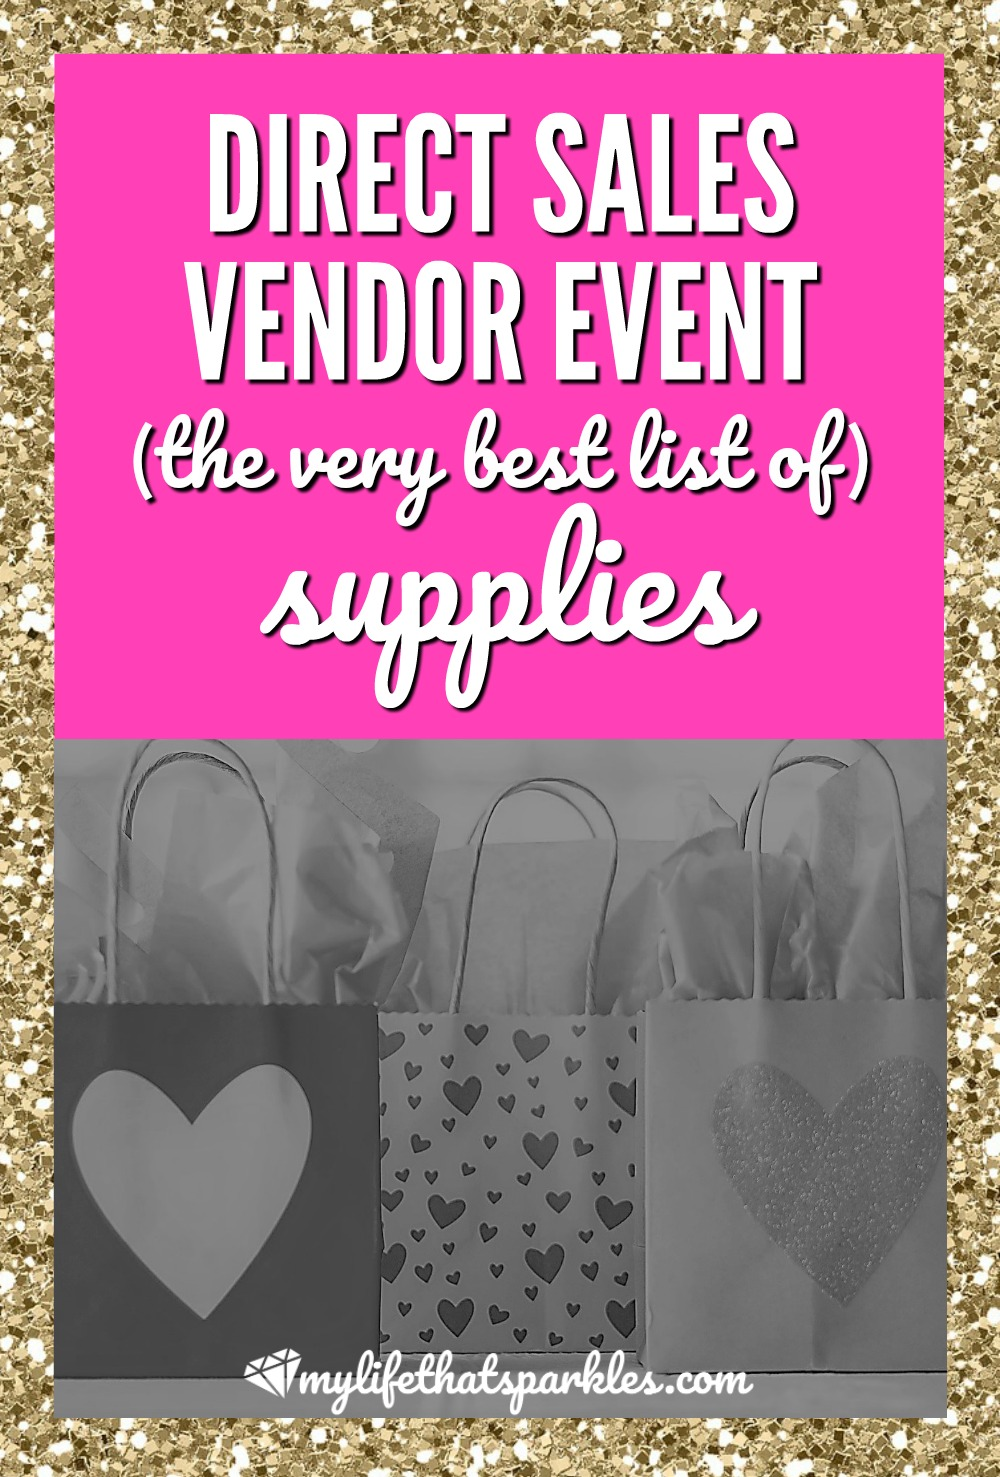 Direct Sales Vendor Event Supplies